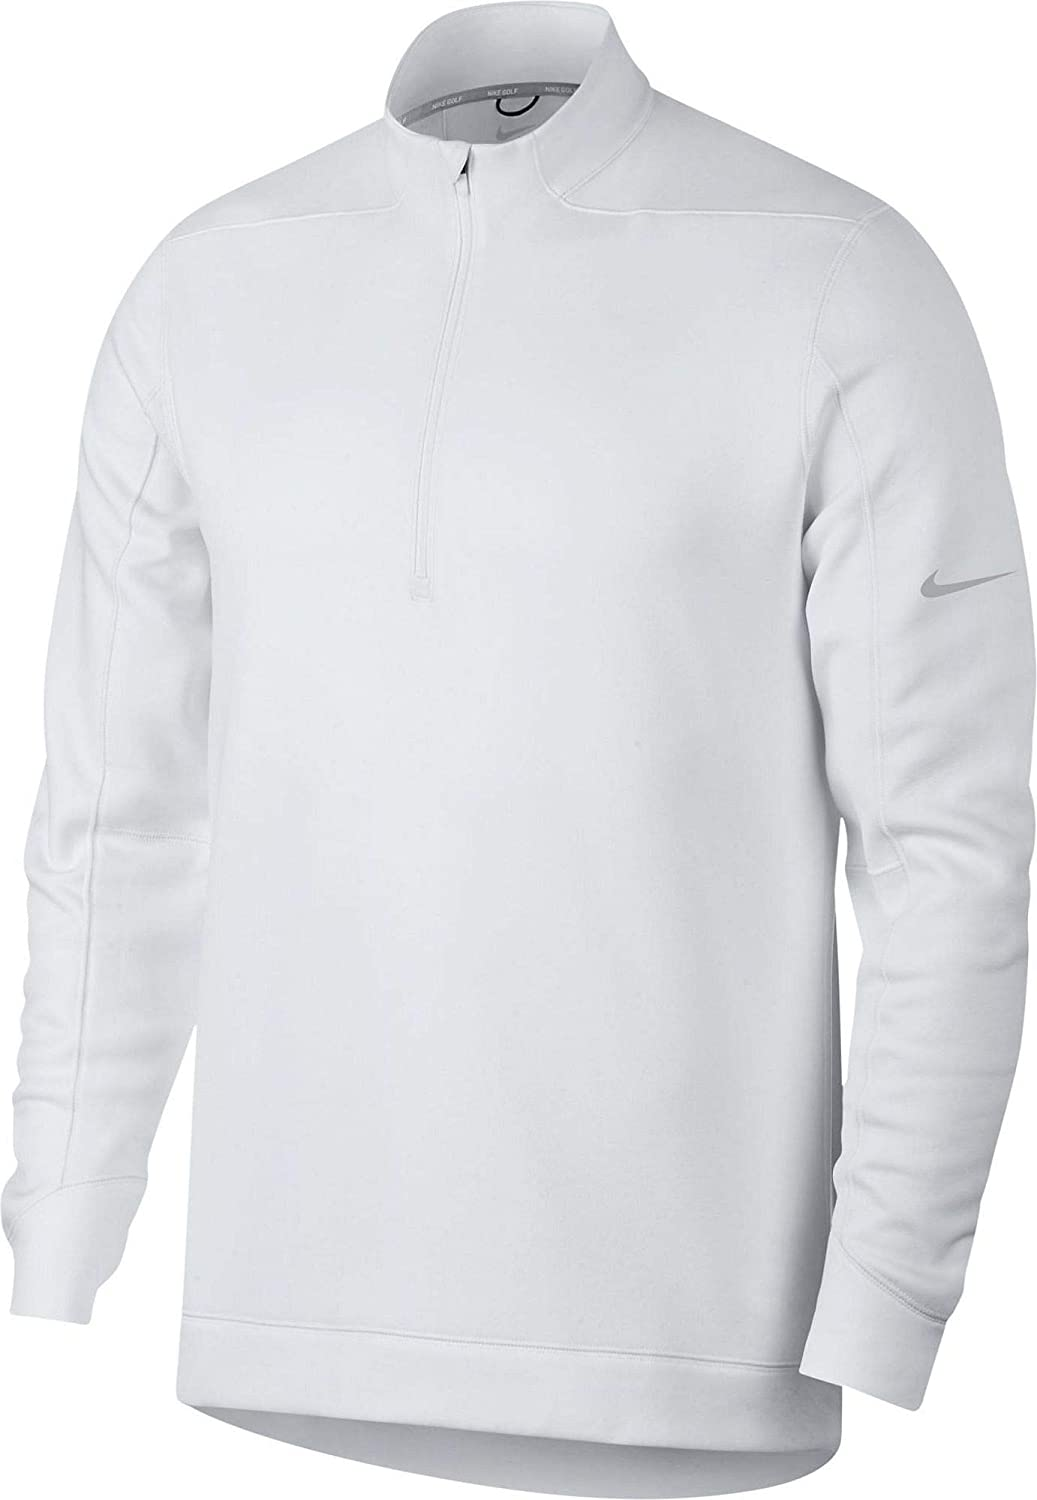 Nike Therma Repel Camiseta de Manga Larga para Hombre: Amazon.es ...